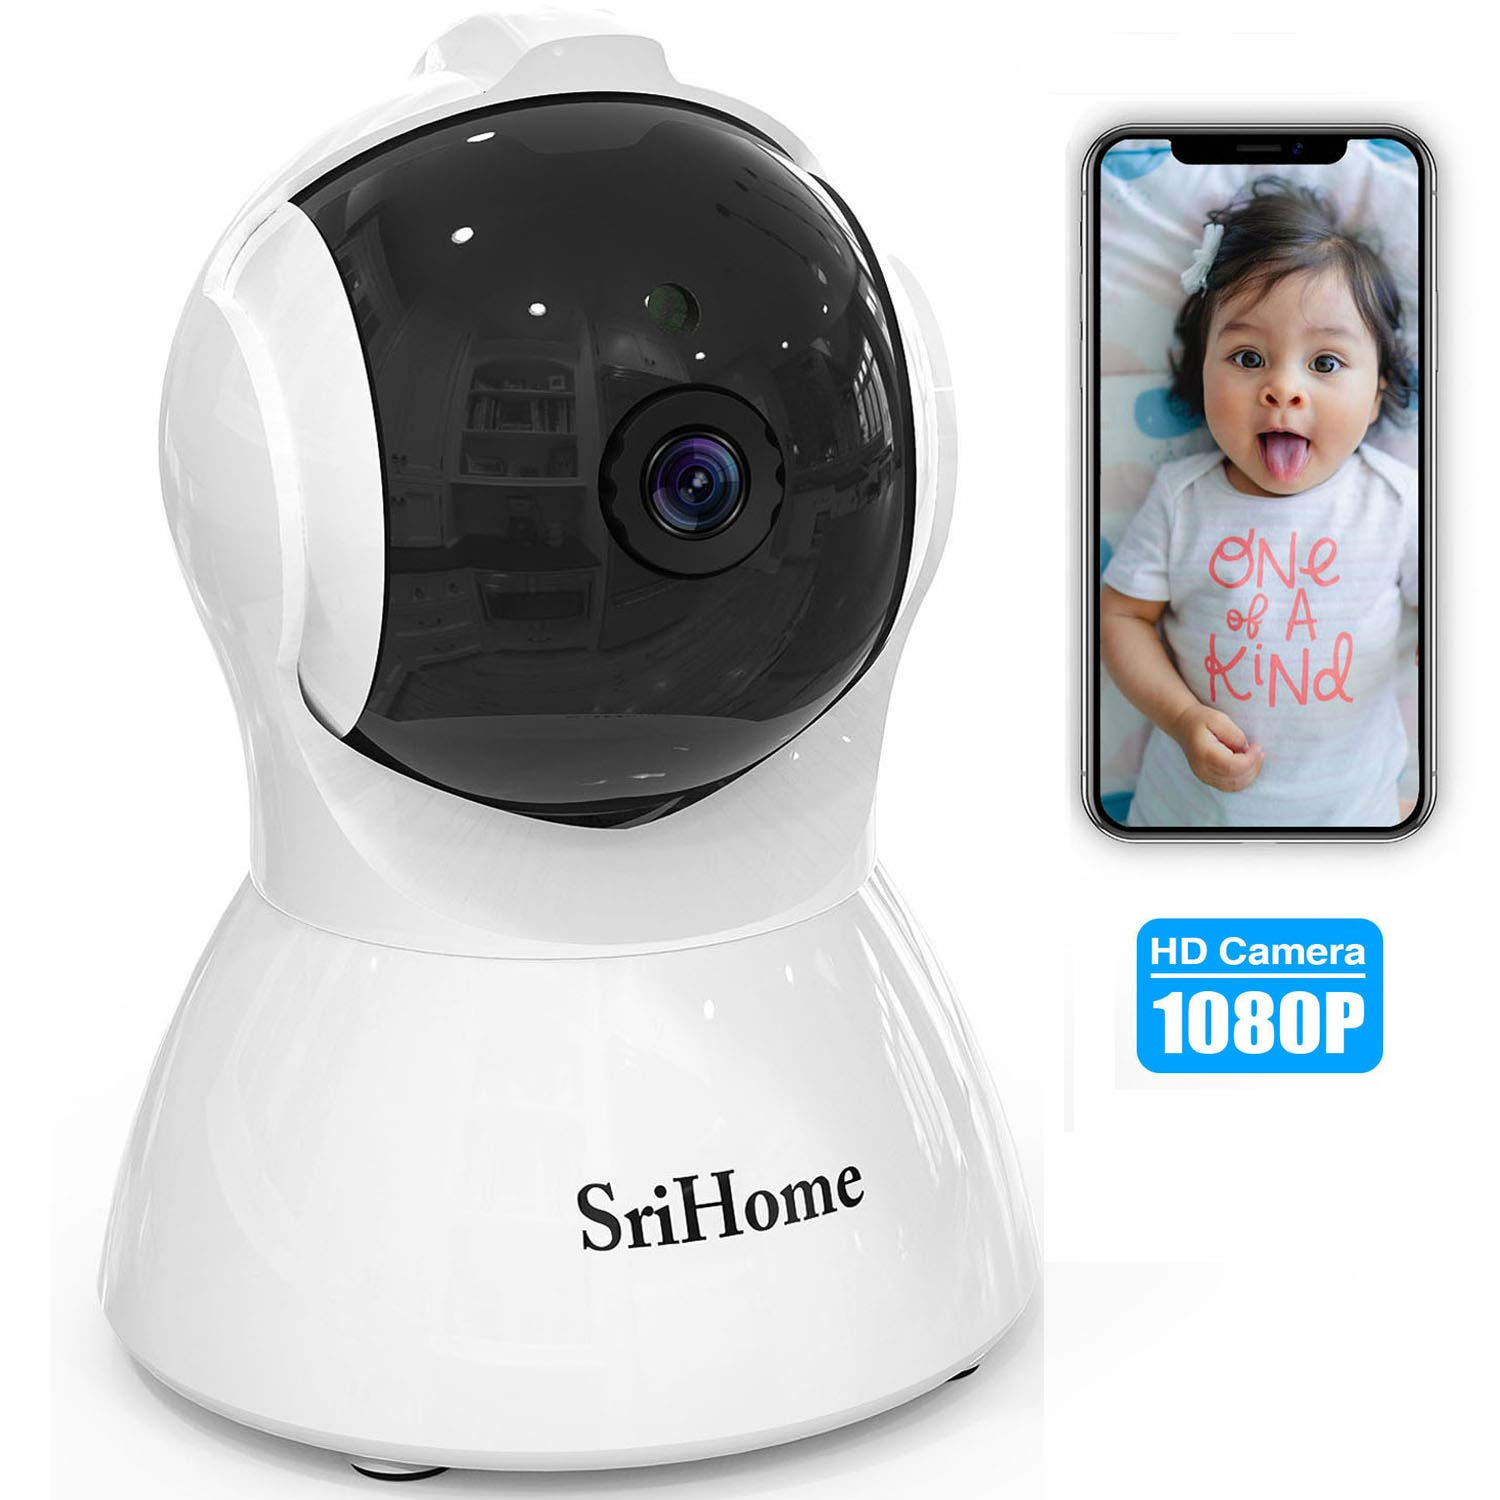 GORRON Wireless Security Camera, 1080P HD Video IP WiFi Pet Camera Baby Monitor Sound/Motion Detection with Night Vision 2-Way Audio Available Monitor Baby Elder Pet Nanny for Indoor Home Shop Office